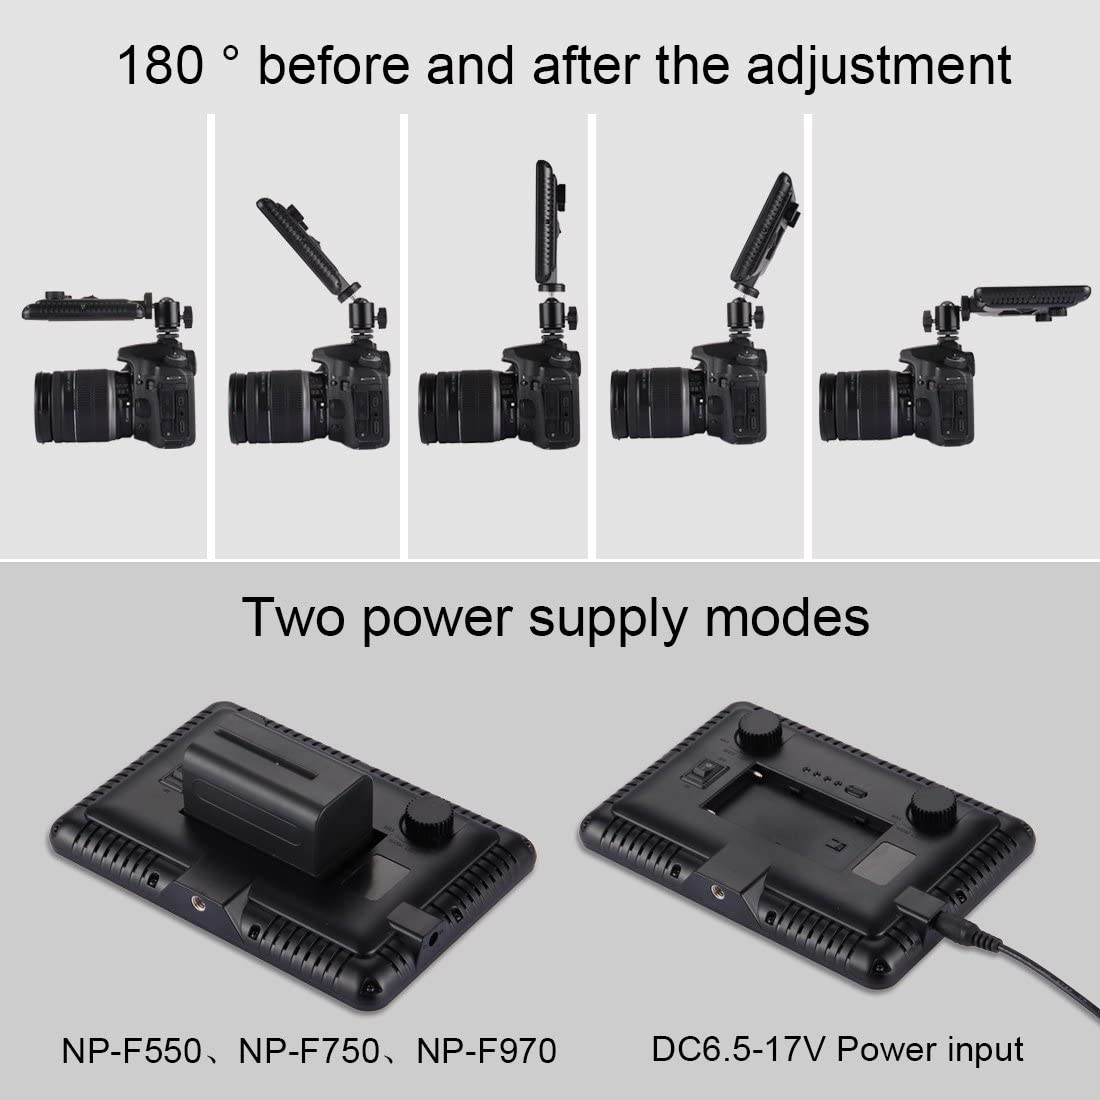 Nikon Protective Case for Sports Camera 152 SMD 2835 LEDs 230-840LM 3000-4500K Dimmable Studio Light Video /& Photo Light for Canon DSLR Cameras